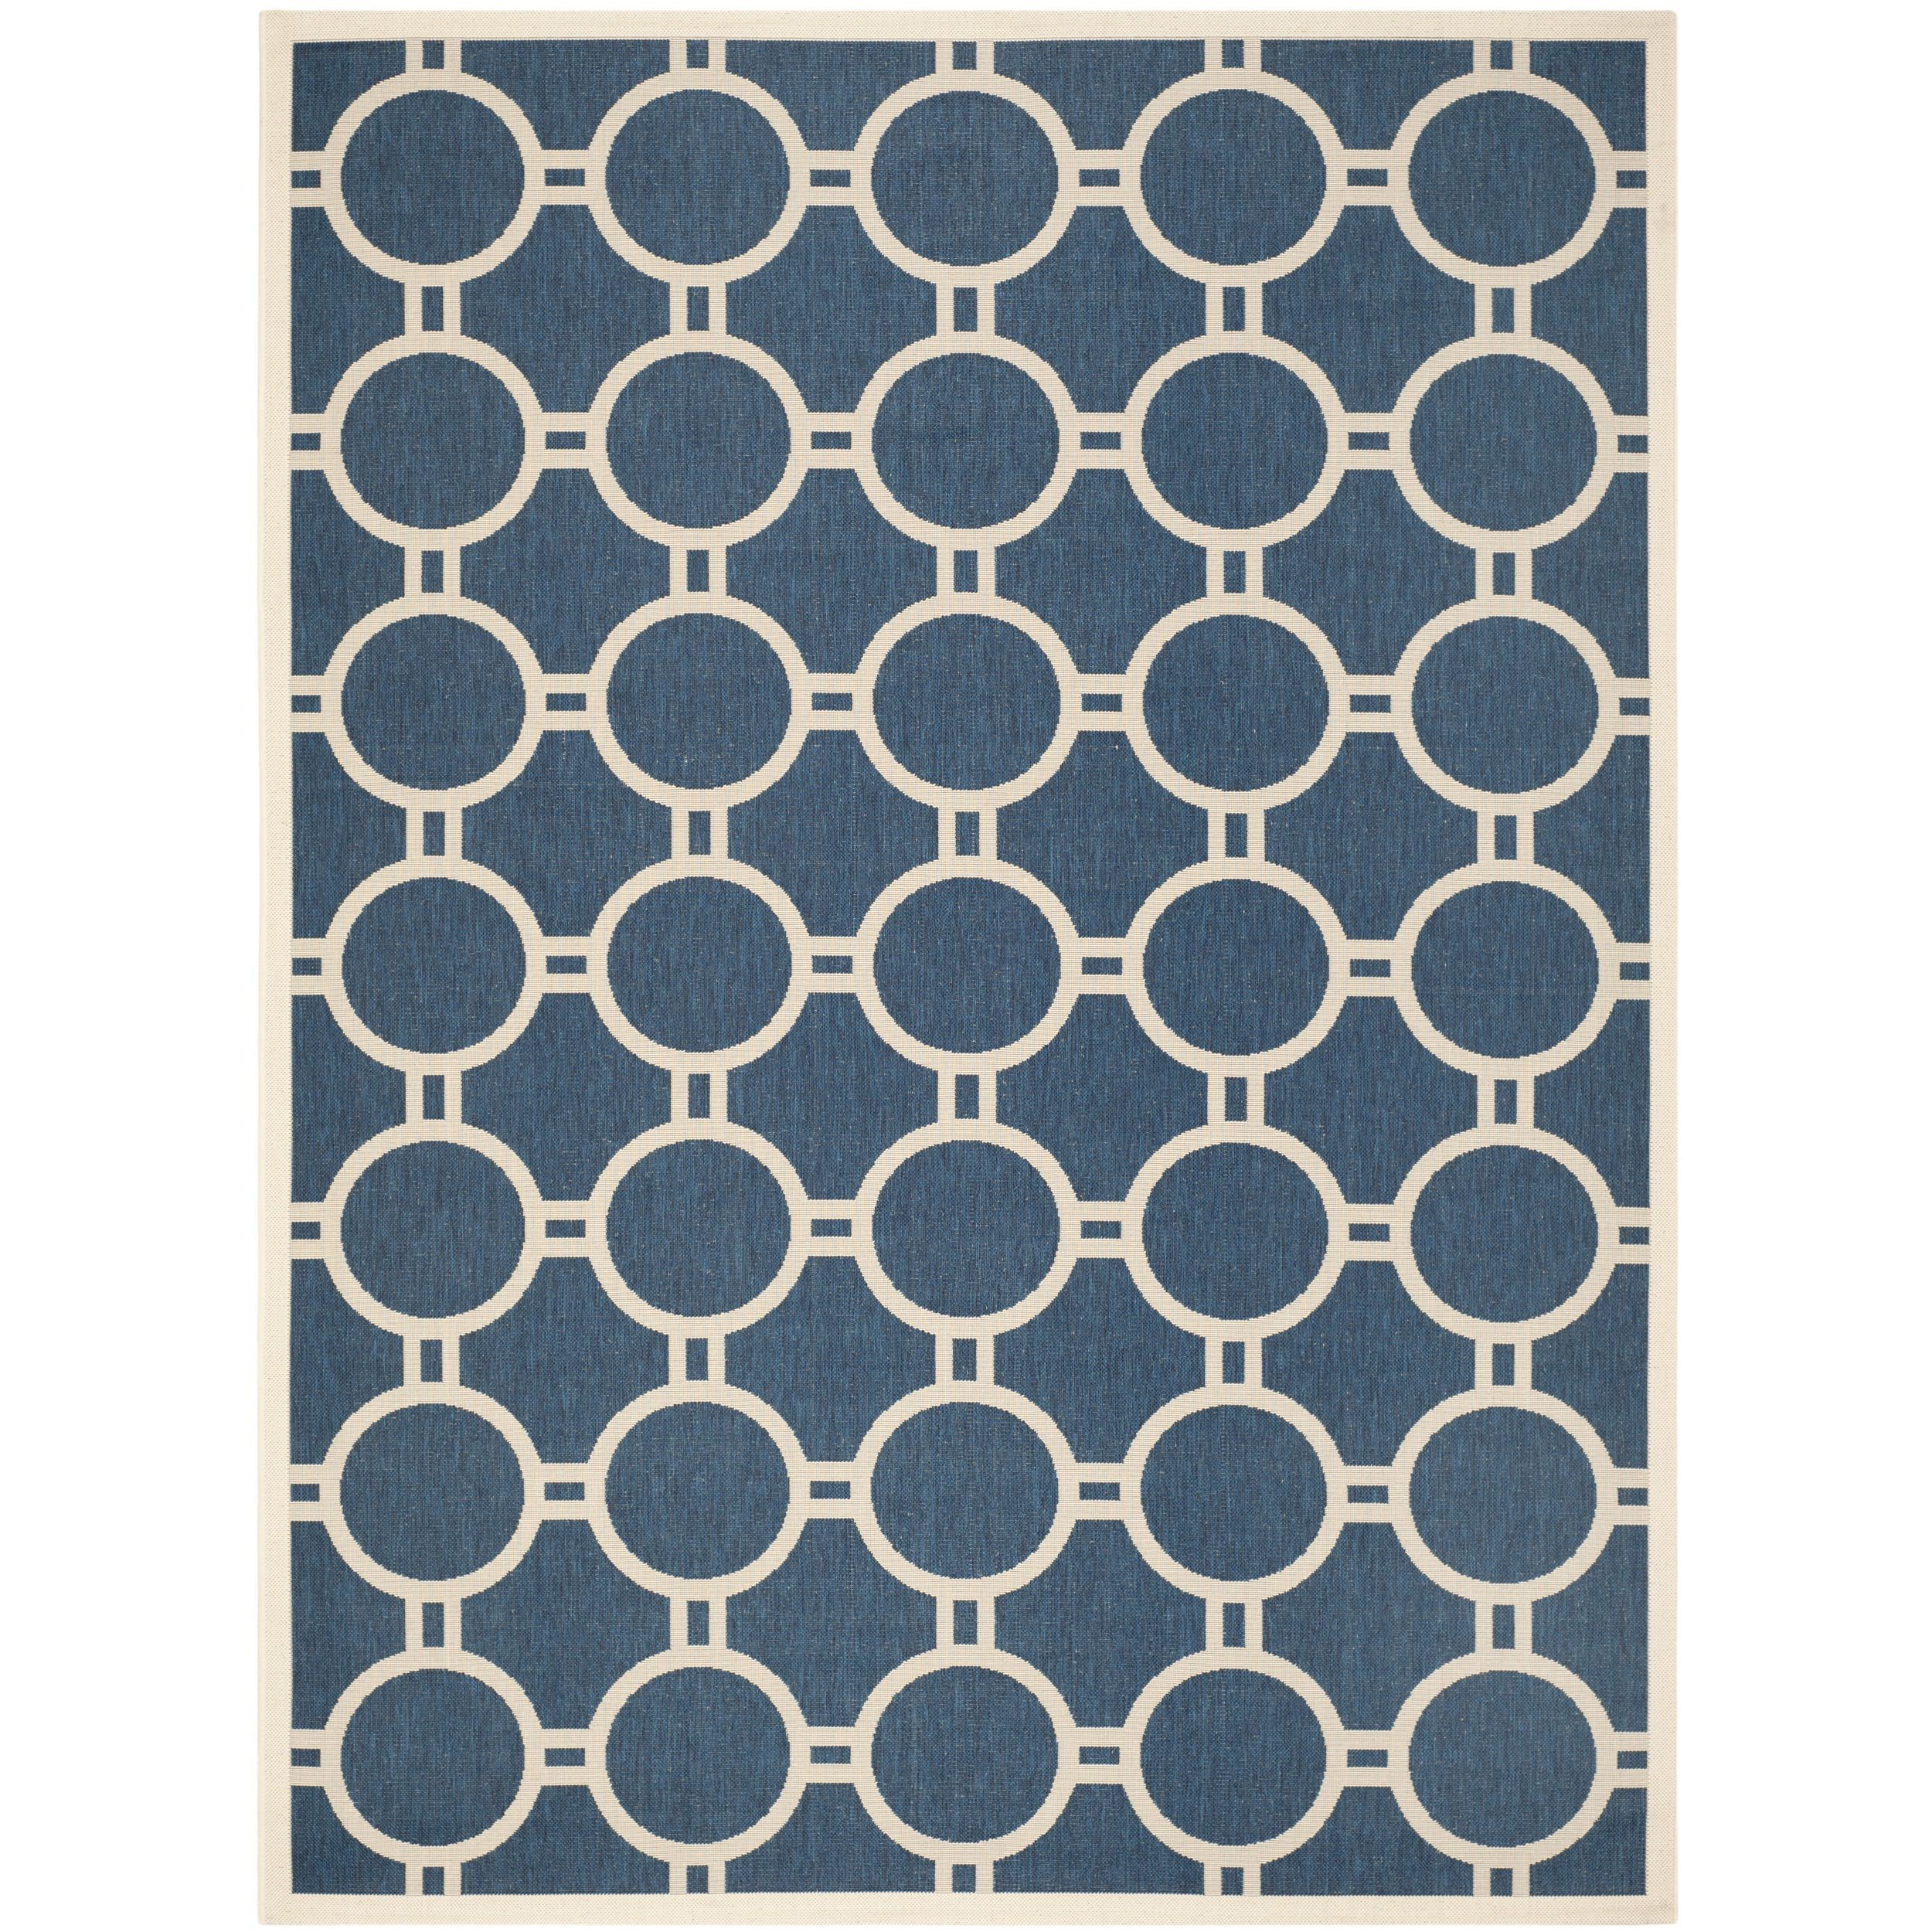 Safavieh Circle-Patterned Indoor/Outdoor Courtyard Navy/Beige Rug (8' x 11') (CY6924-268-8), Blue, Size 8' x 10' (Polypropylene, Geometric)